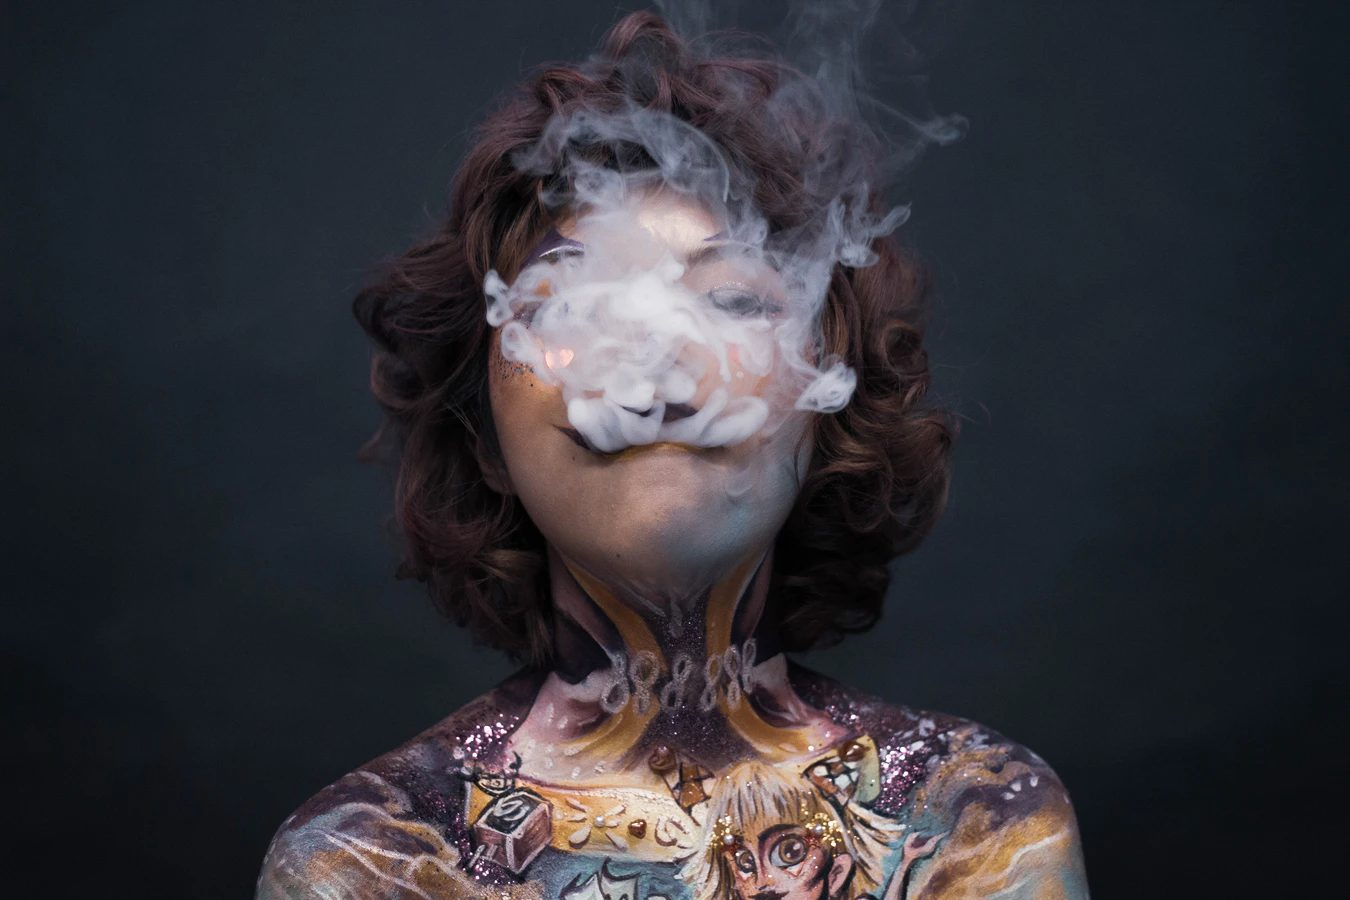 tattooed woman blowing smoke from a joint